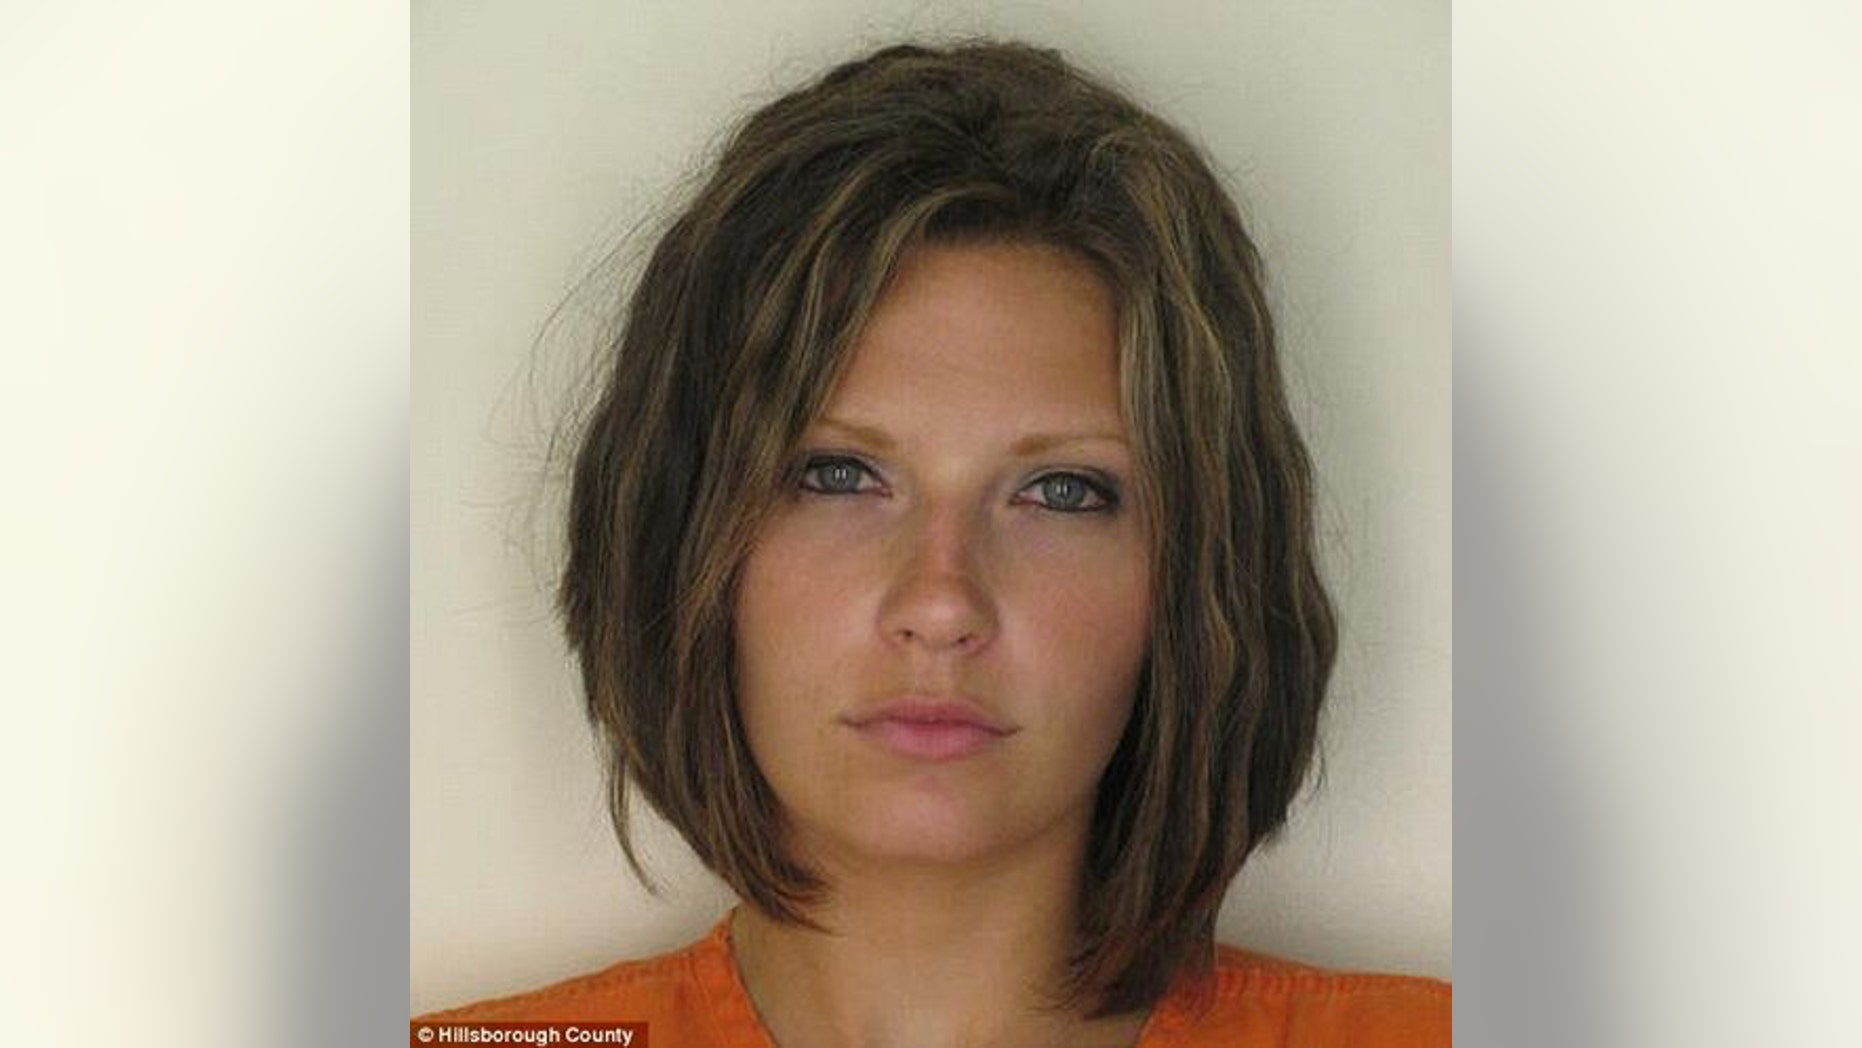 Meagan Simmons, of Zephyrhills, Fla., seen here in a 2010 mug shot, filed the lawsuit in Hillsborough County Court against InstantCheckmate.com. (Hillsborough County)